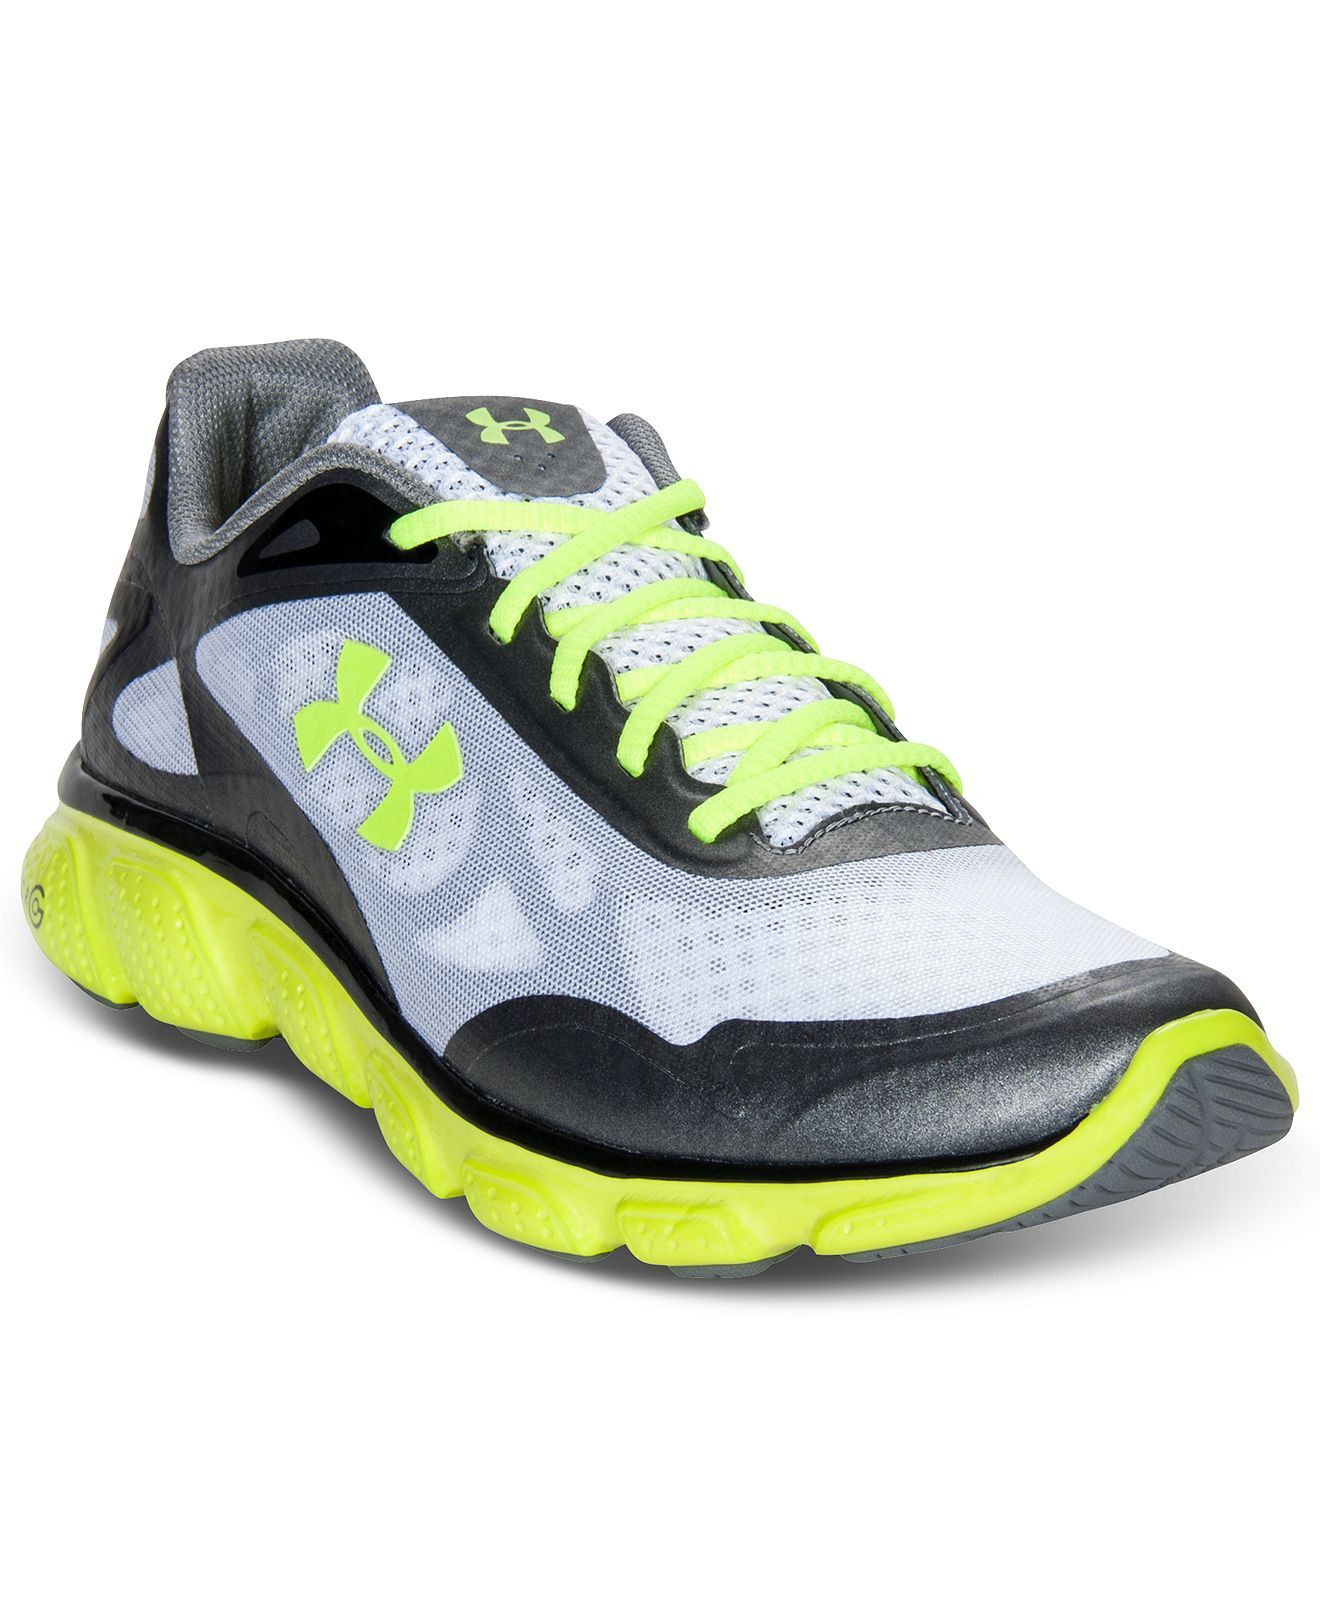 eb136a04b868 Under Armour Men's Shoes, Micro G Pulse Sneakers - Sneakers & Athletic -  Men - Macy's